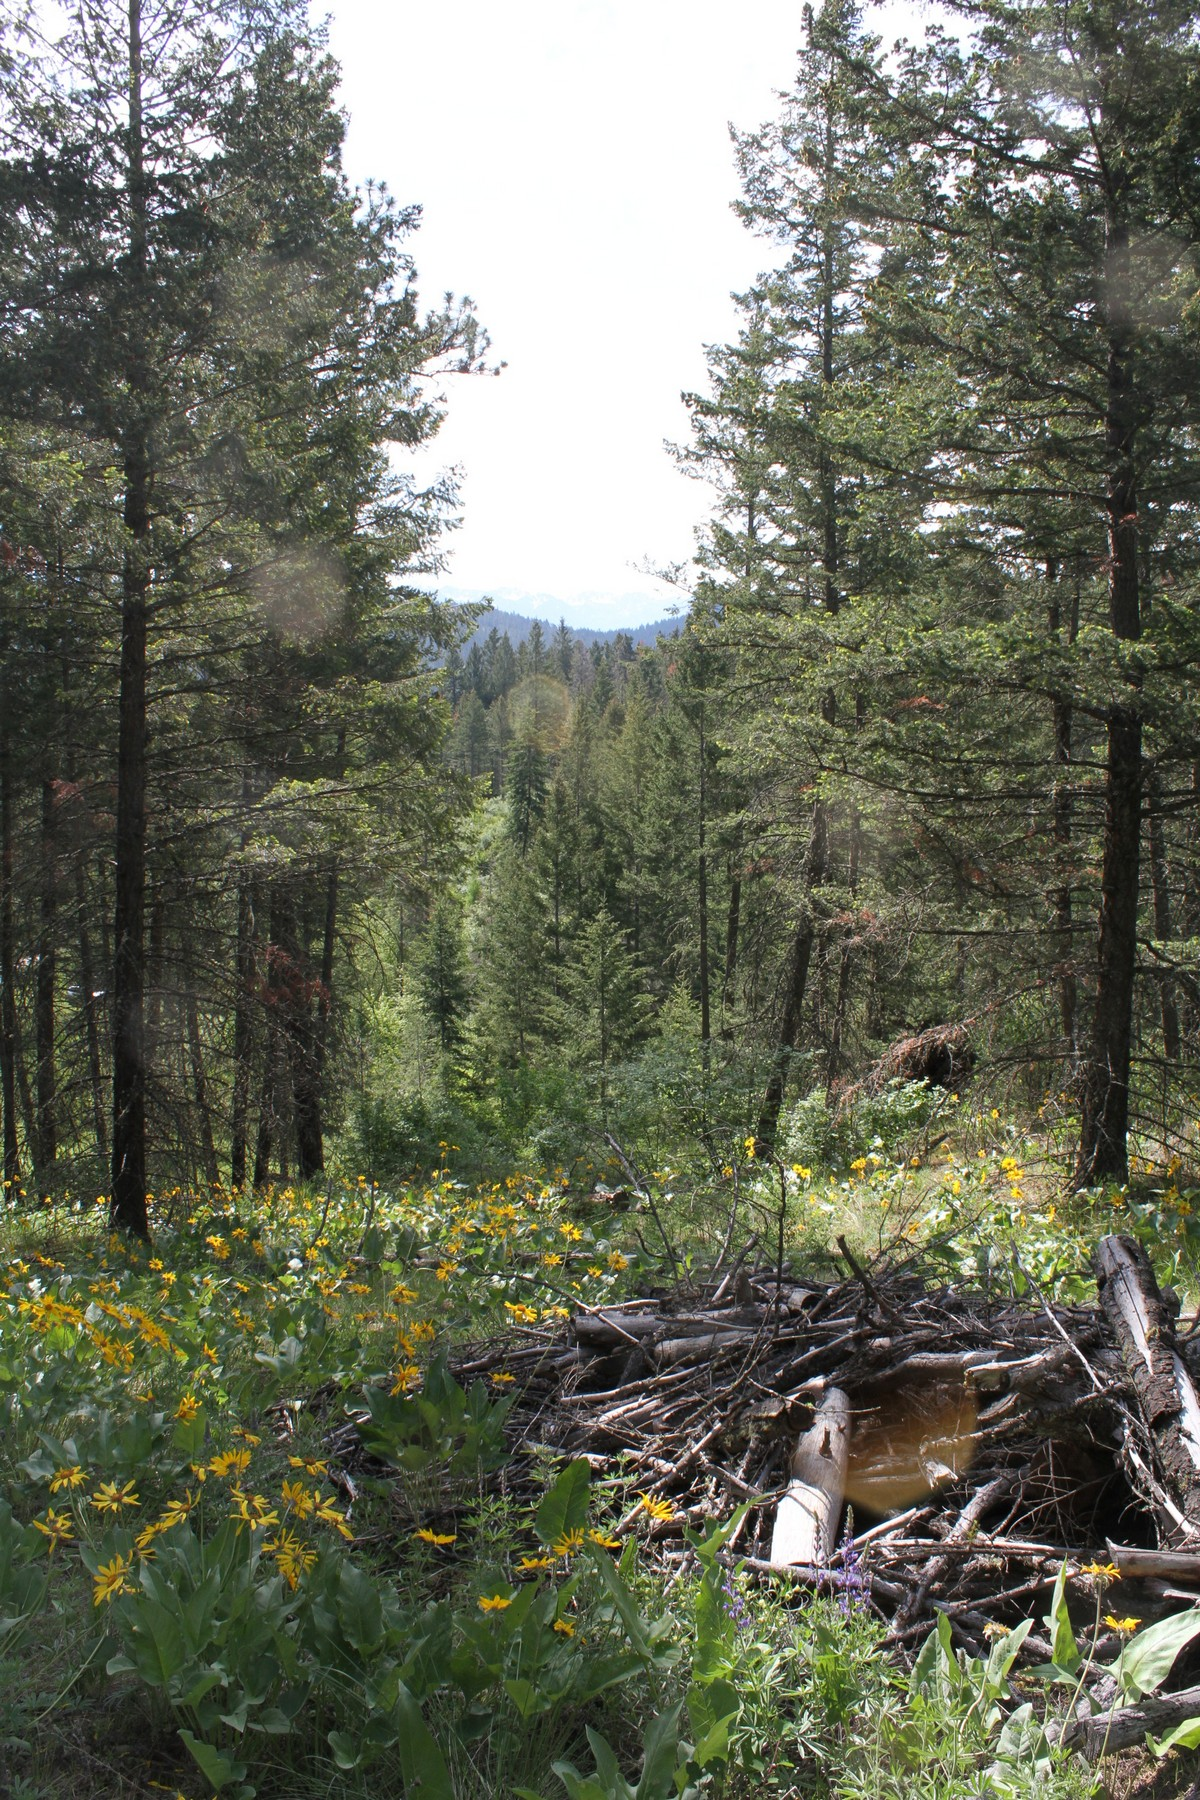 Land for Sale at White Swan Road Nhn White Swan Rd Polson, Montana, 59860 United States